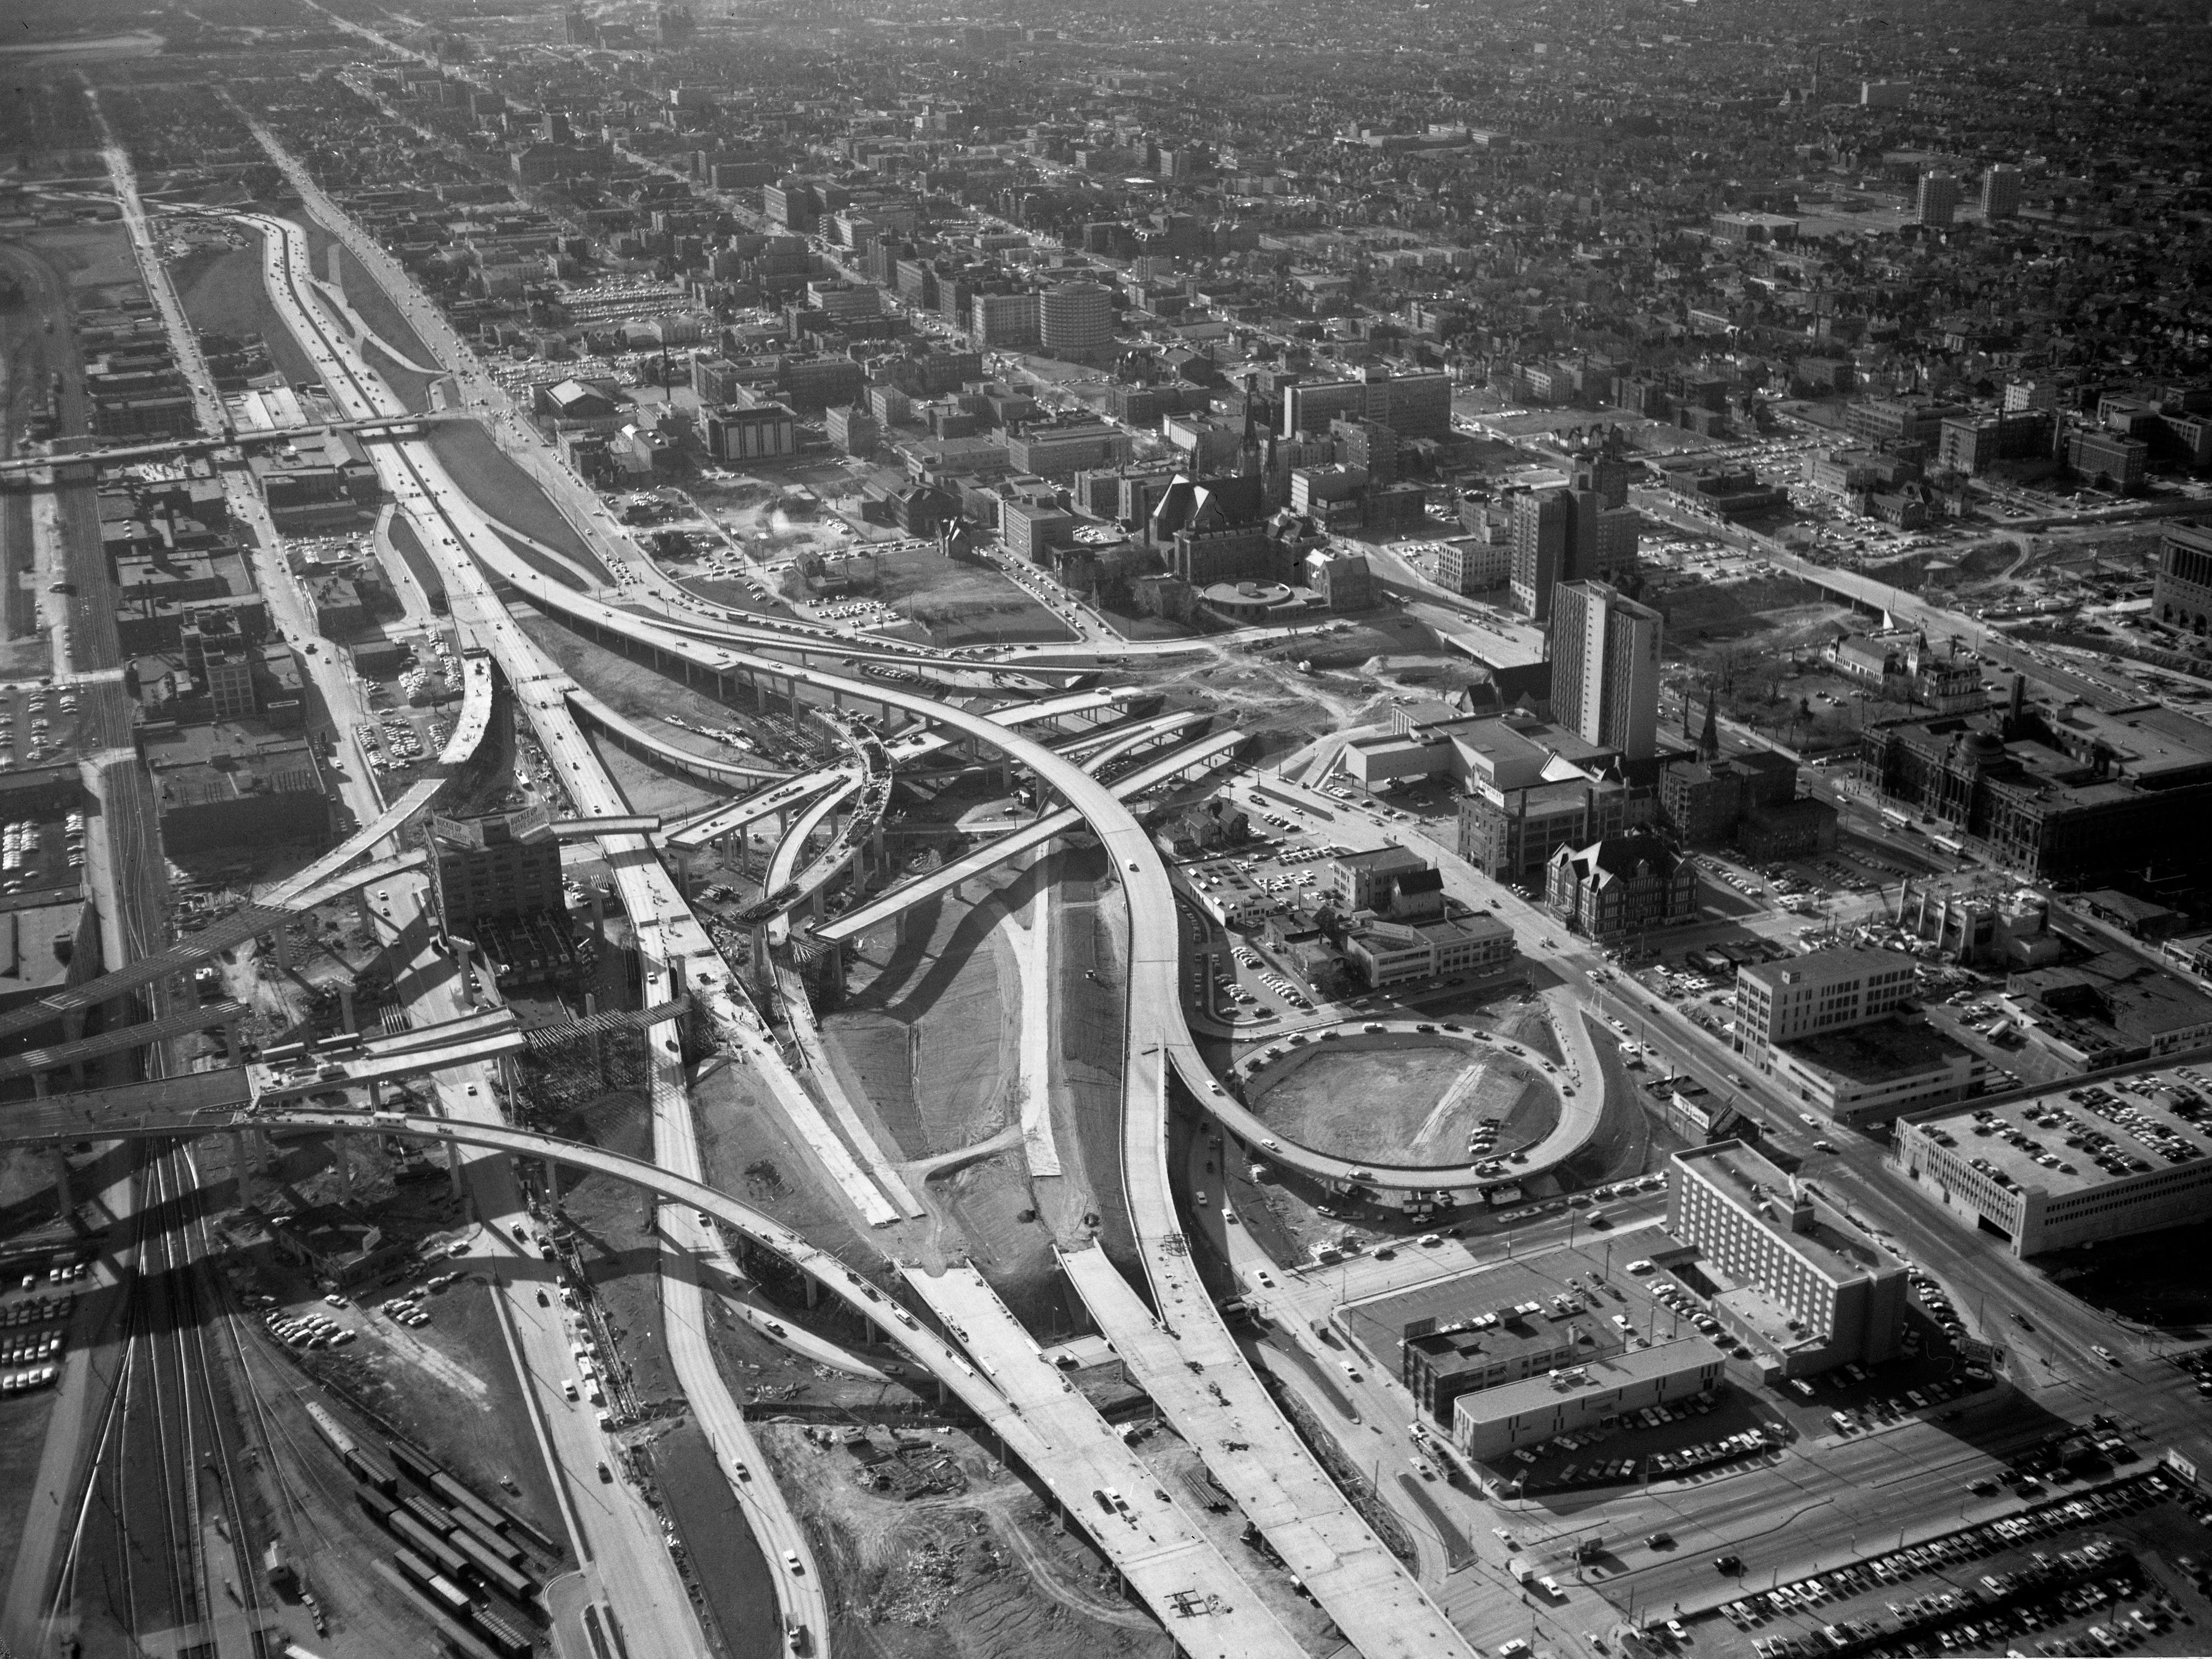 An aerial photo of the Marquette Interchange in April 1968 shows how much work was still to be done to get it completed by the end of the year. This photo was published in the April 17, 1968, Milwaukee Sentinel.